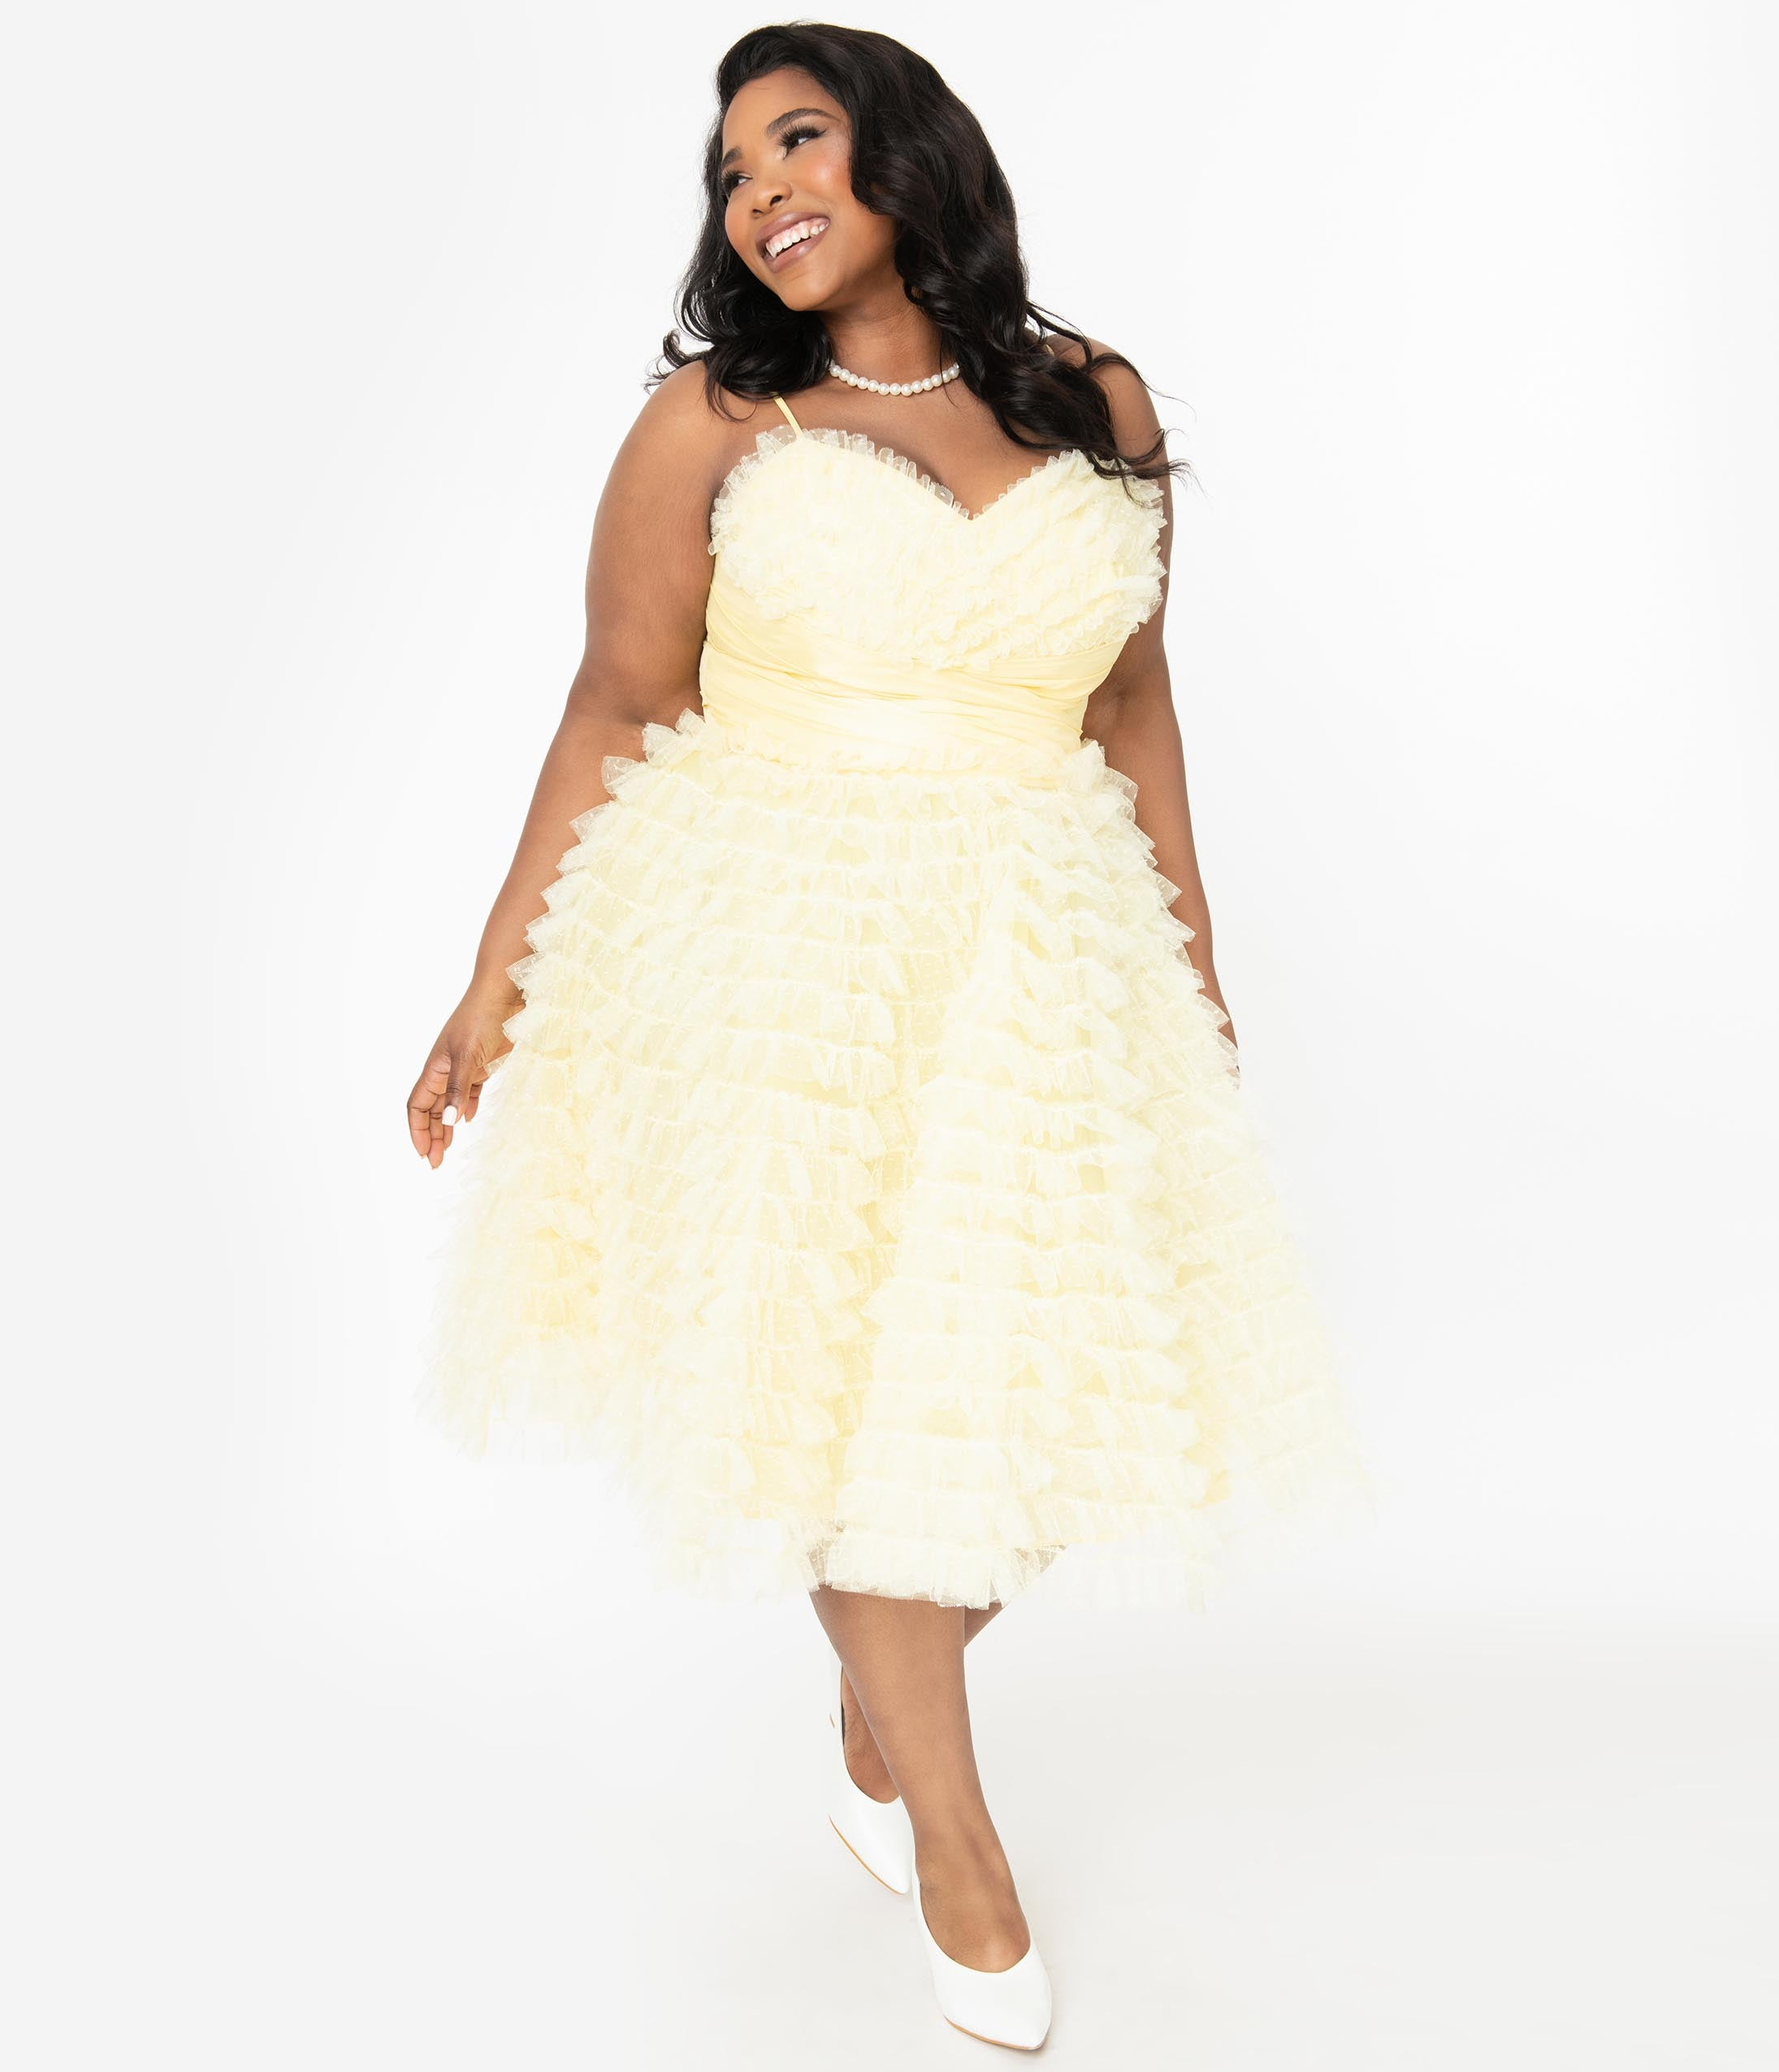 Vintage Evening Dresses and Formal Evening Gowns Unique Vintage Plus Size 1950S Yellow Ruffled Tulle Cupcake Swing Dress $110.00 AT vintagedancer.com